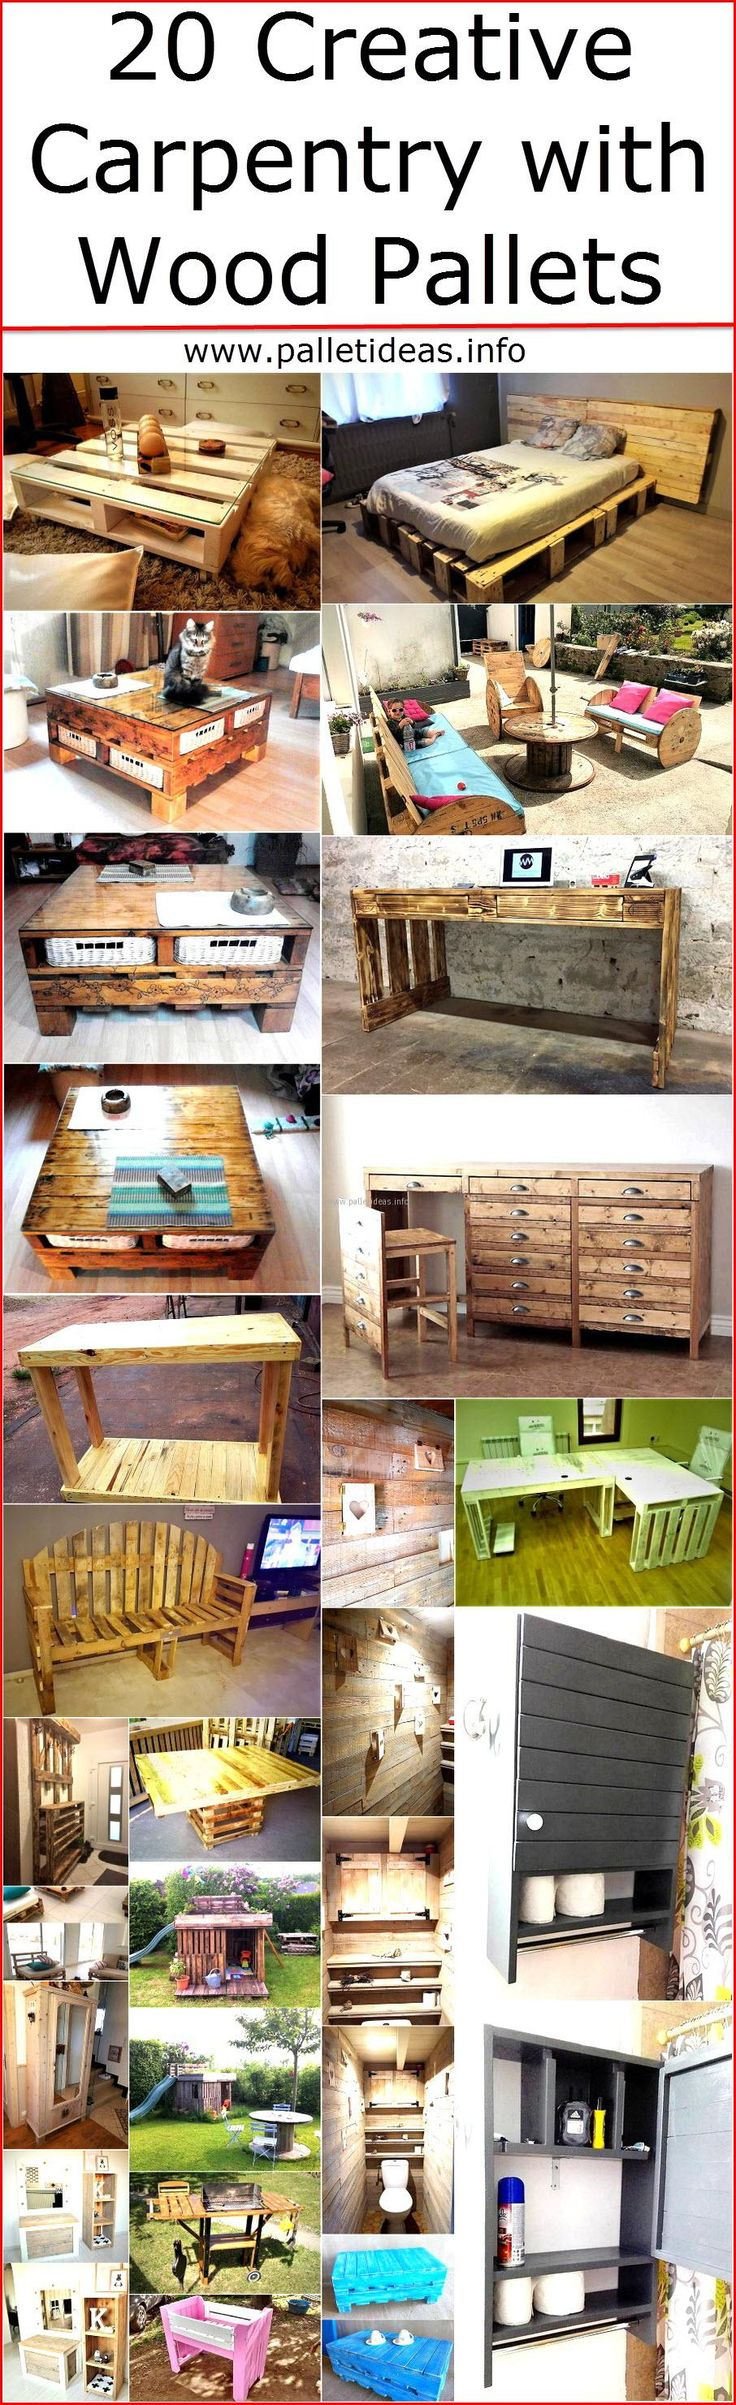 720 Best Images About Recycle Pallet Creations On Pinterest